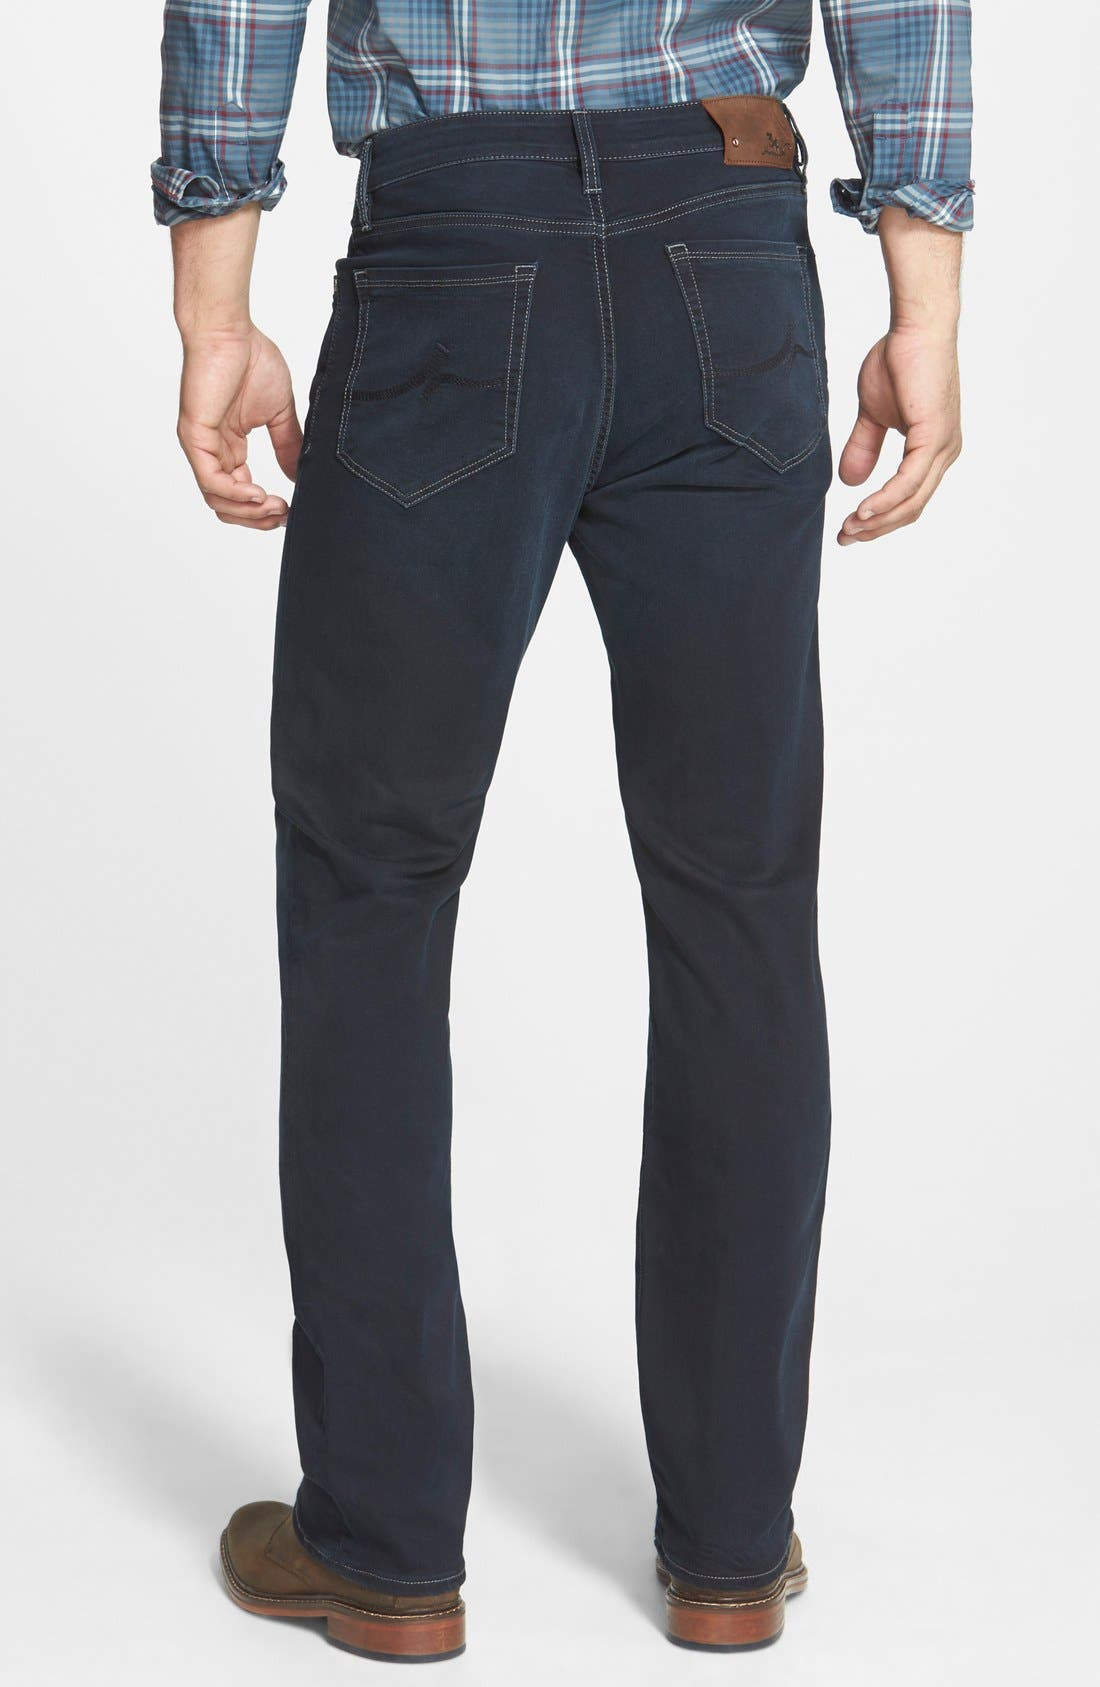 'Charisma' Classic Relaxed Fit Jeans,                             Alternate thumbnail 2, color,                             Midnight Austin